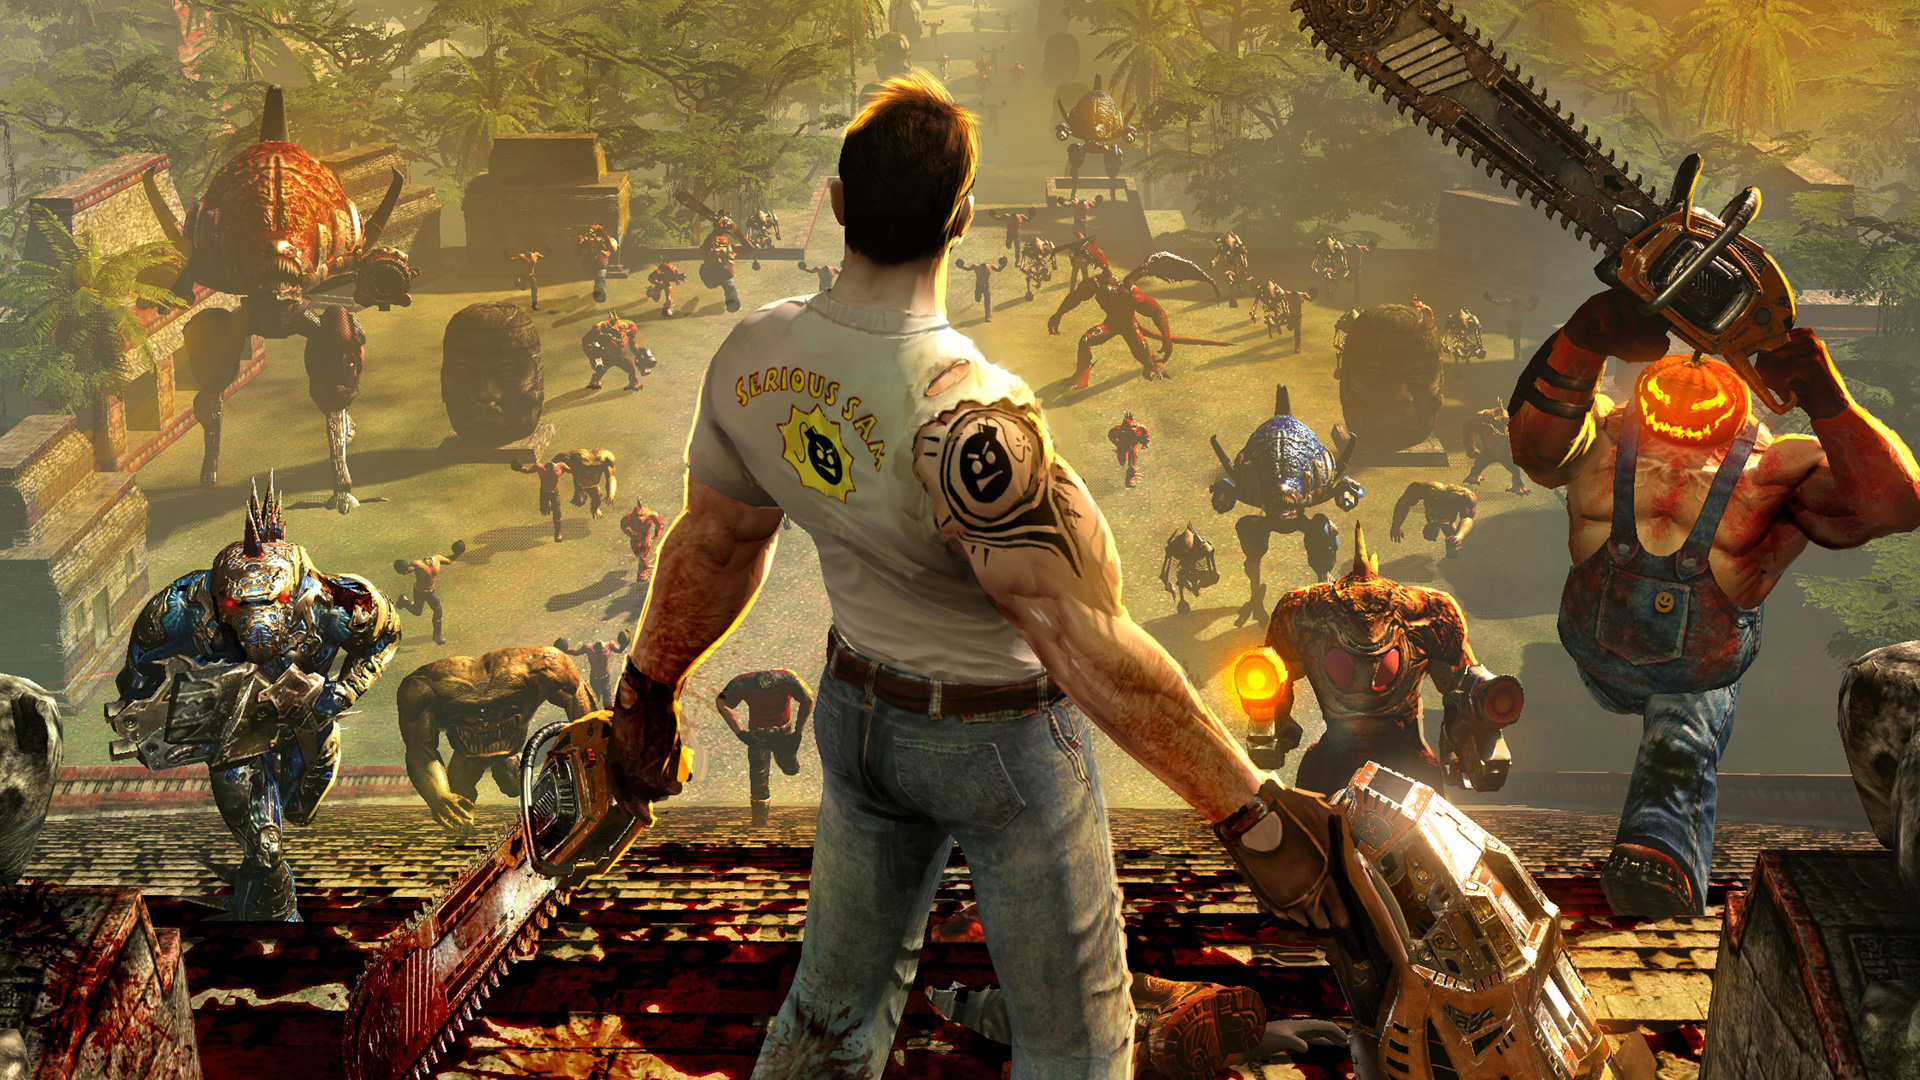 Serious Sam HD: The Second Encounter Wallpaper in 1920x1080